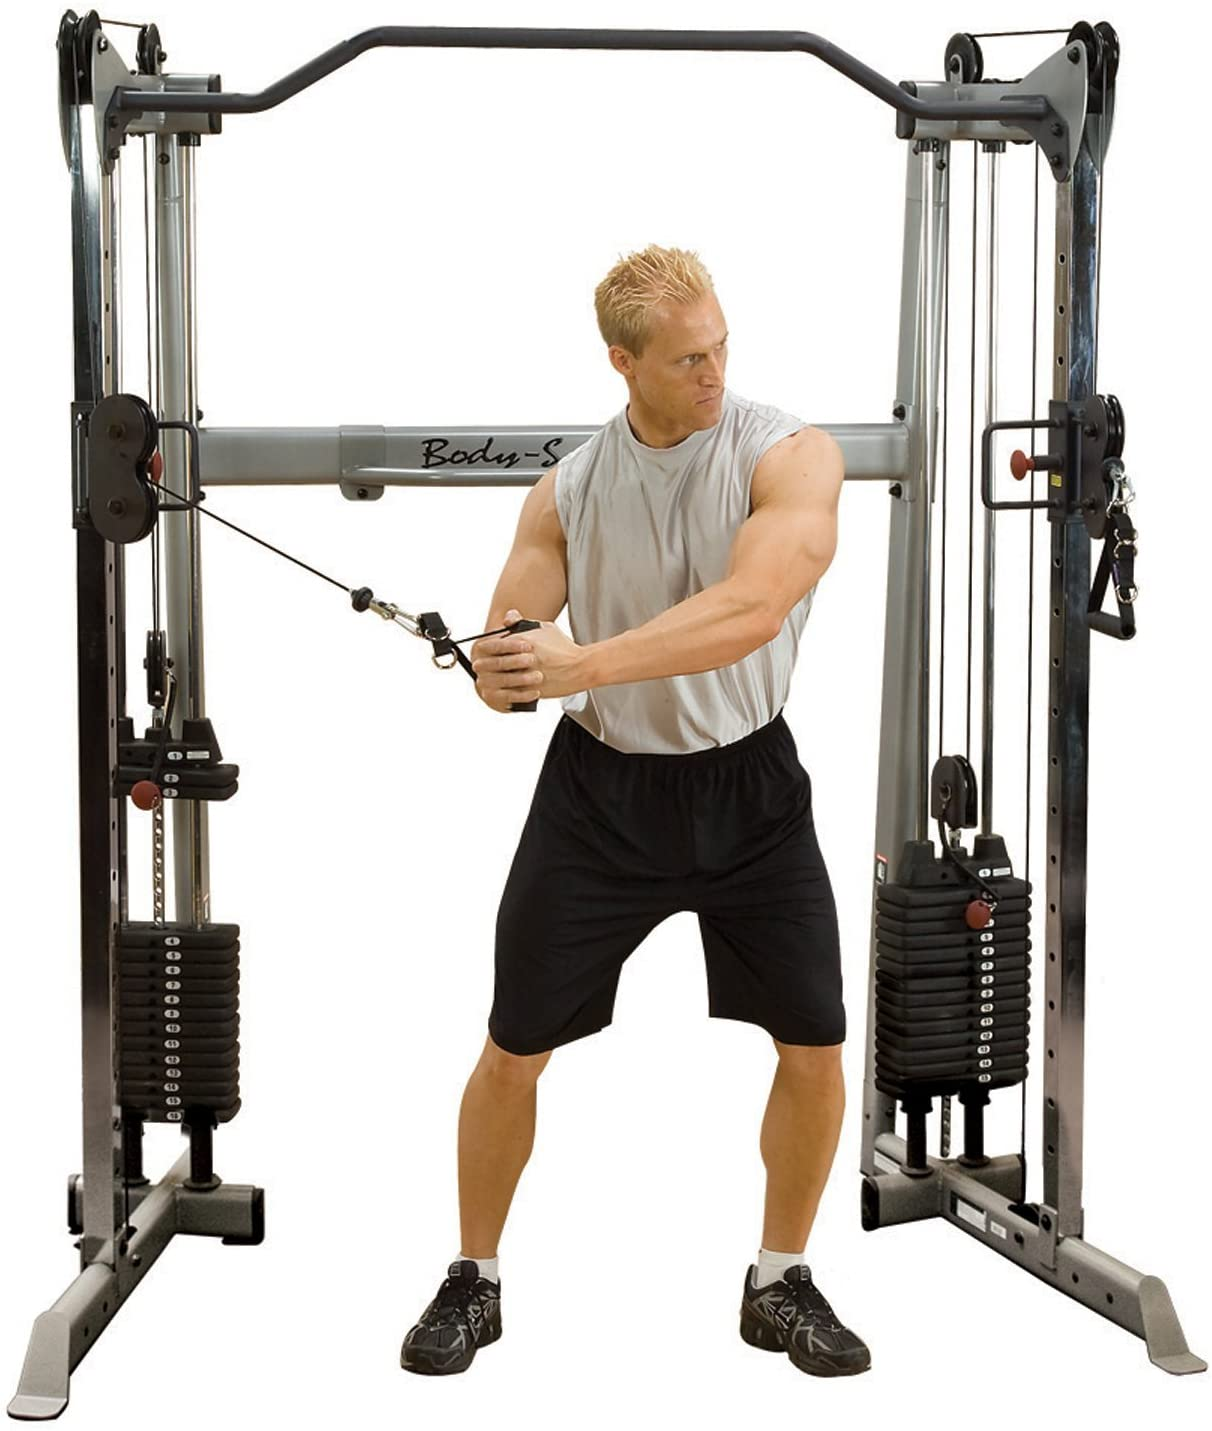 Top 10 Best Cable Machines for Home Gym in 2020 Reviews 1